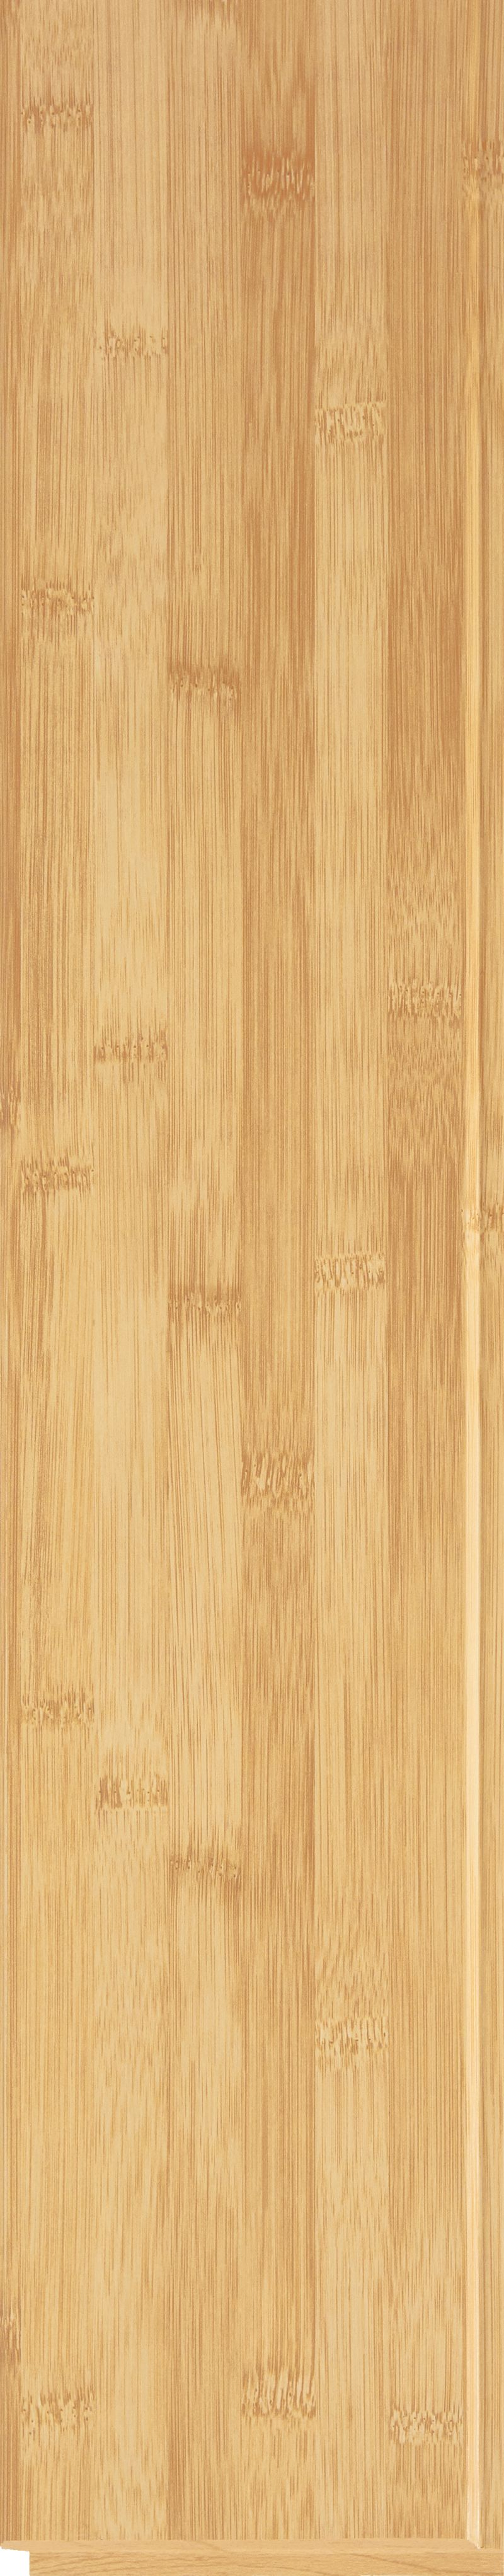 Wood look ceilings 1271 armstrong ceilings residential woodhaven bamboo 5 dailygadgetfo Images